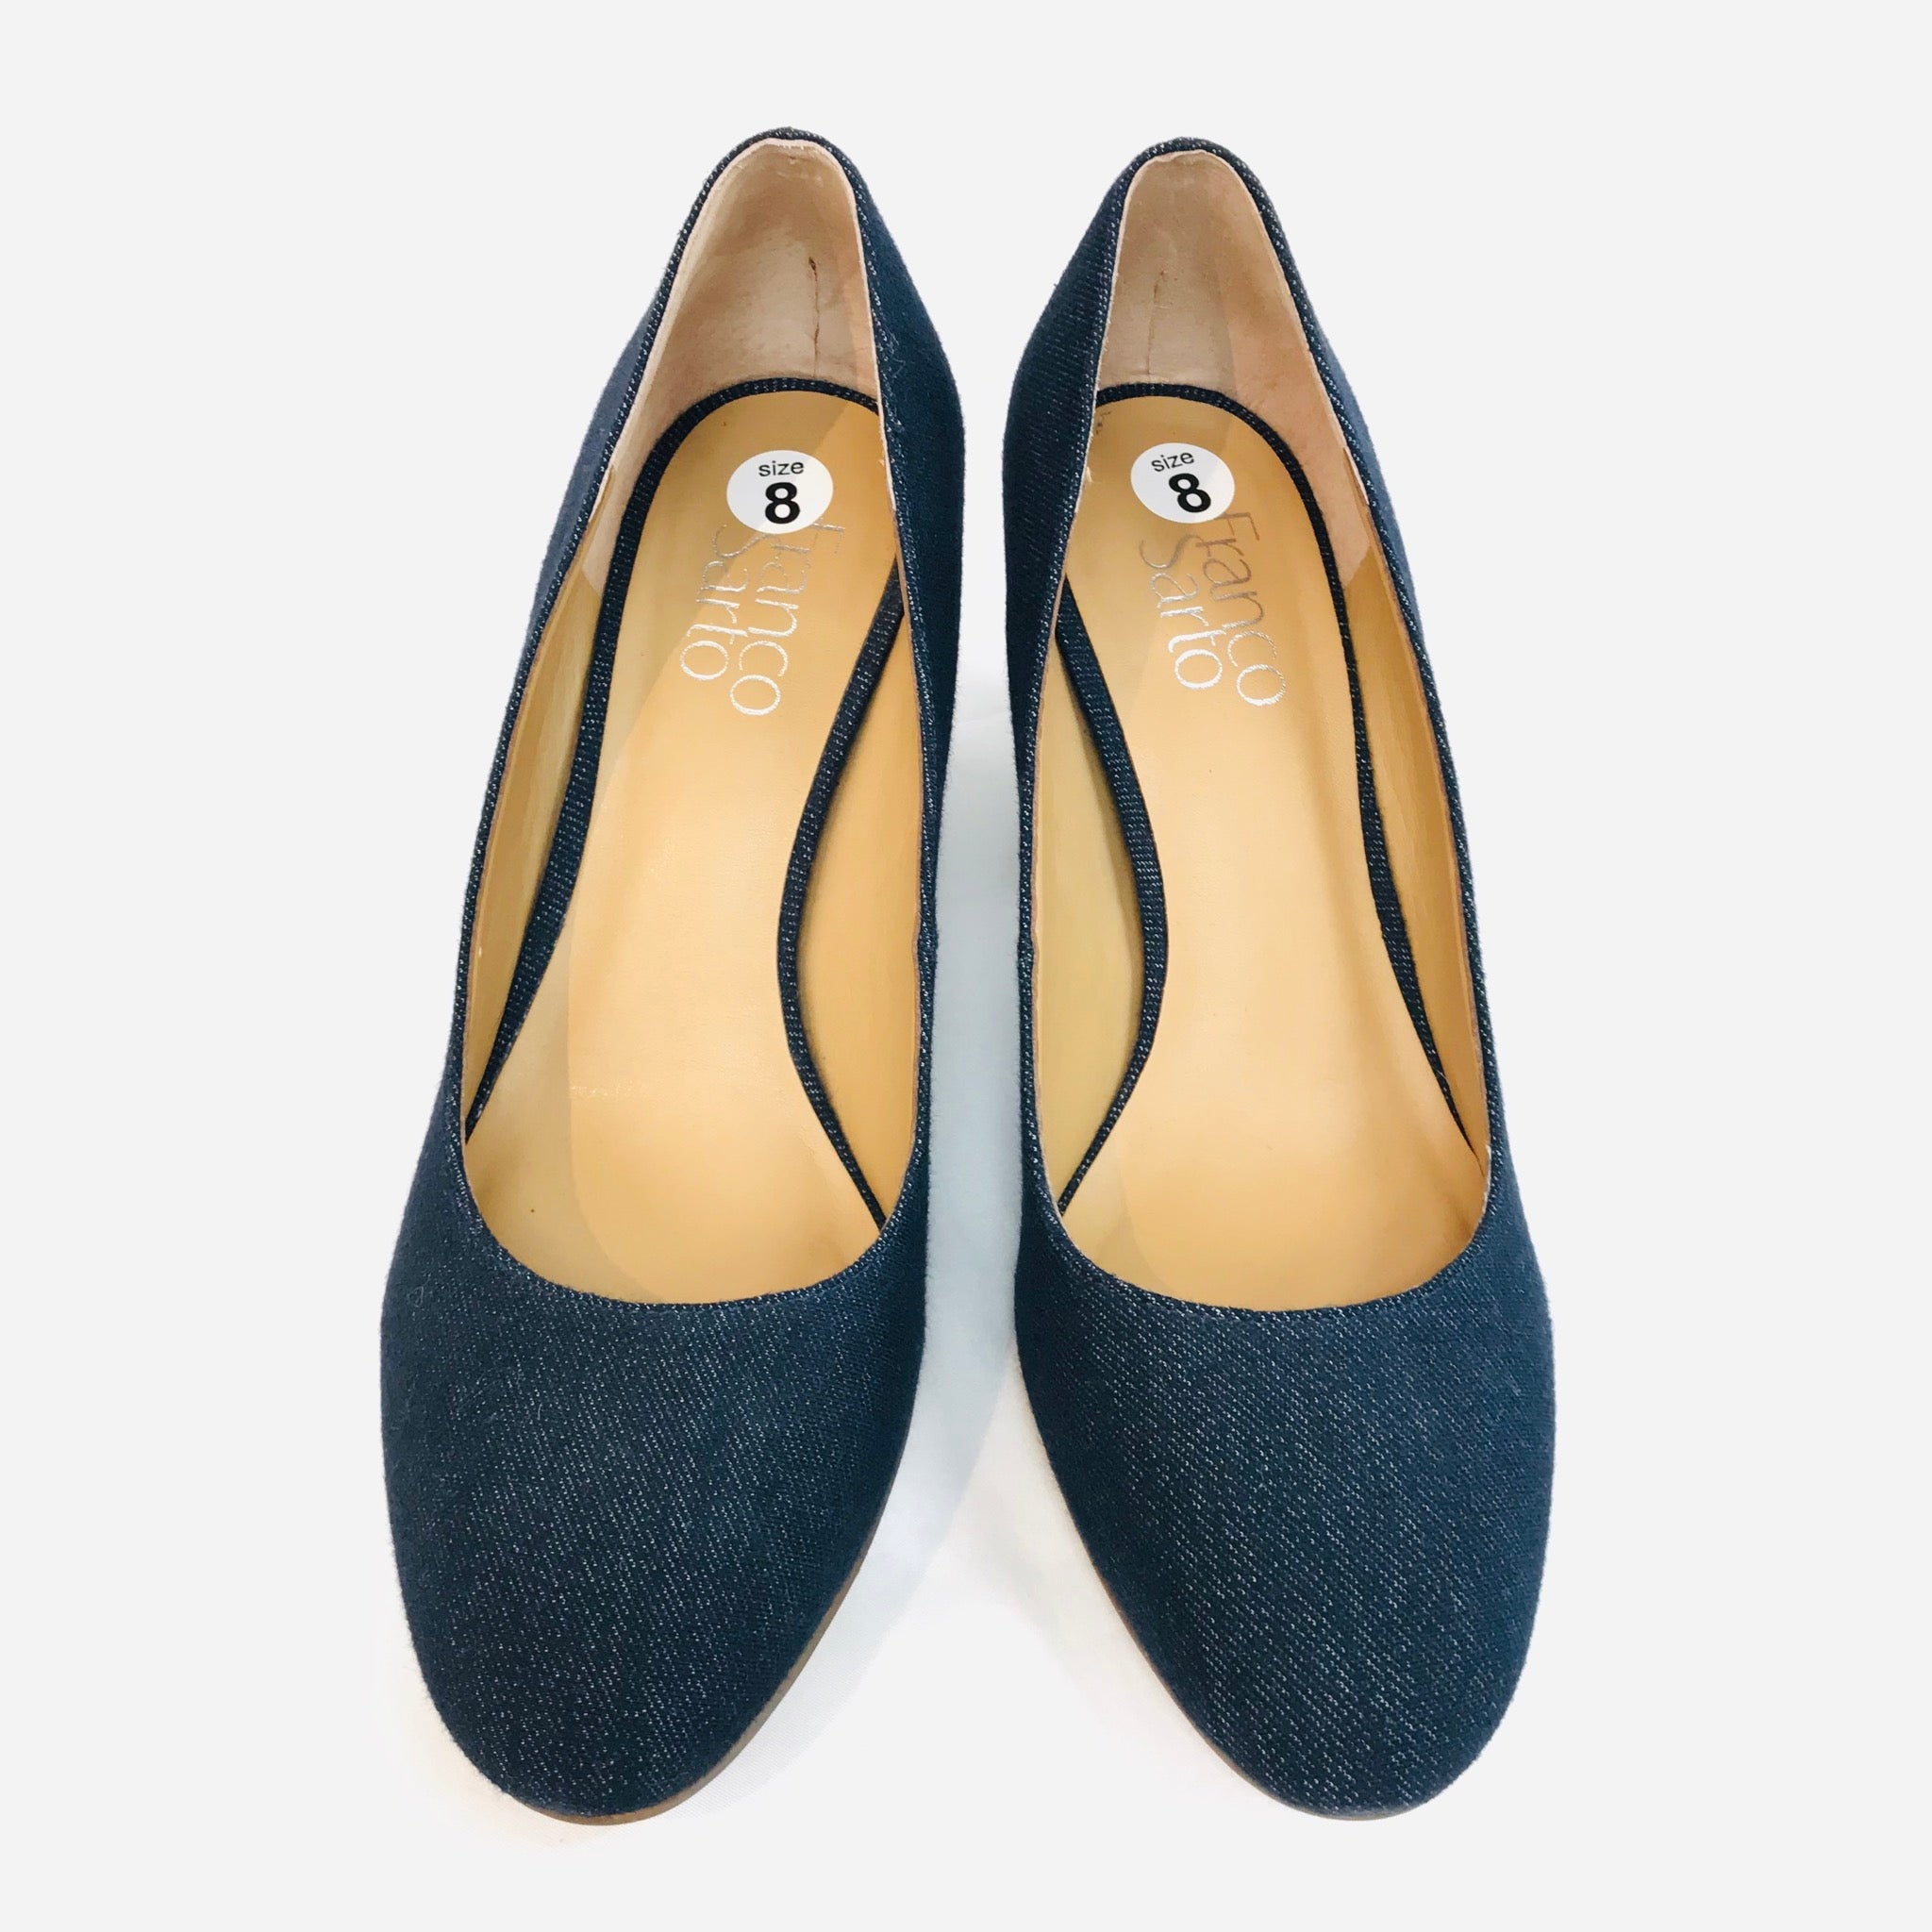 Primary Photo - BRAND: FRANCO SARTO <BR>STYLE: SHOES LOW<BR>COLOR: DENIM <BR>SIZE: 8 <BR>SKU: 262-26211-124511<BR>AS IS